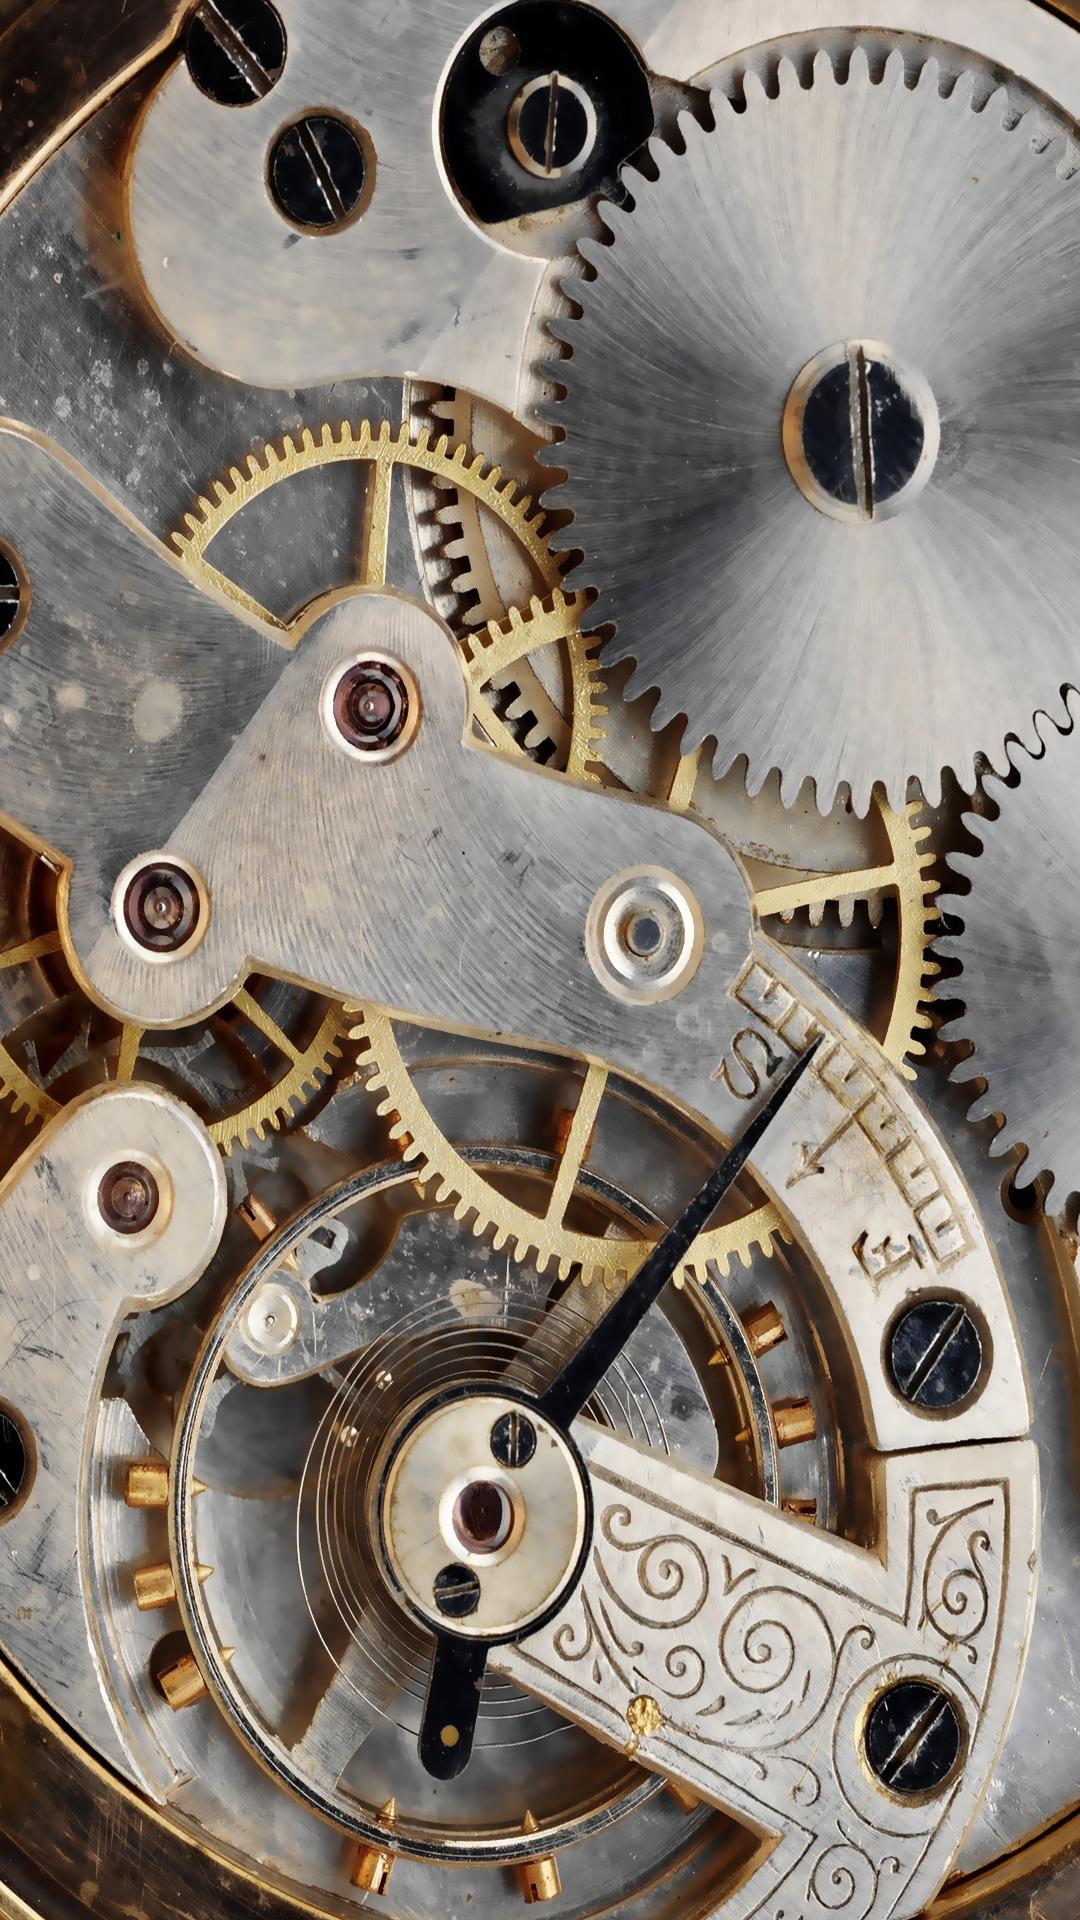 Mechanical Gear Apus Live Wallpaper For Android Apk Download